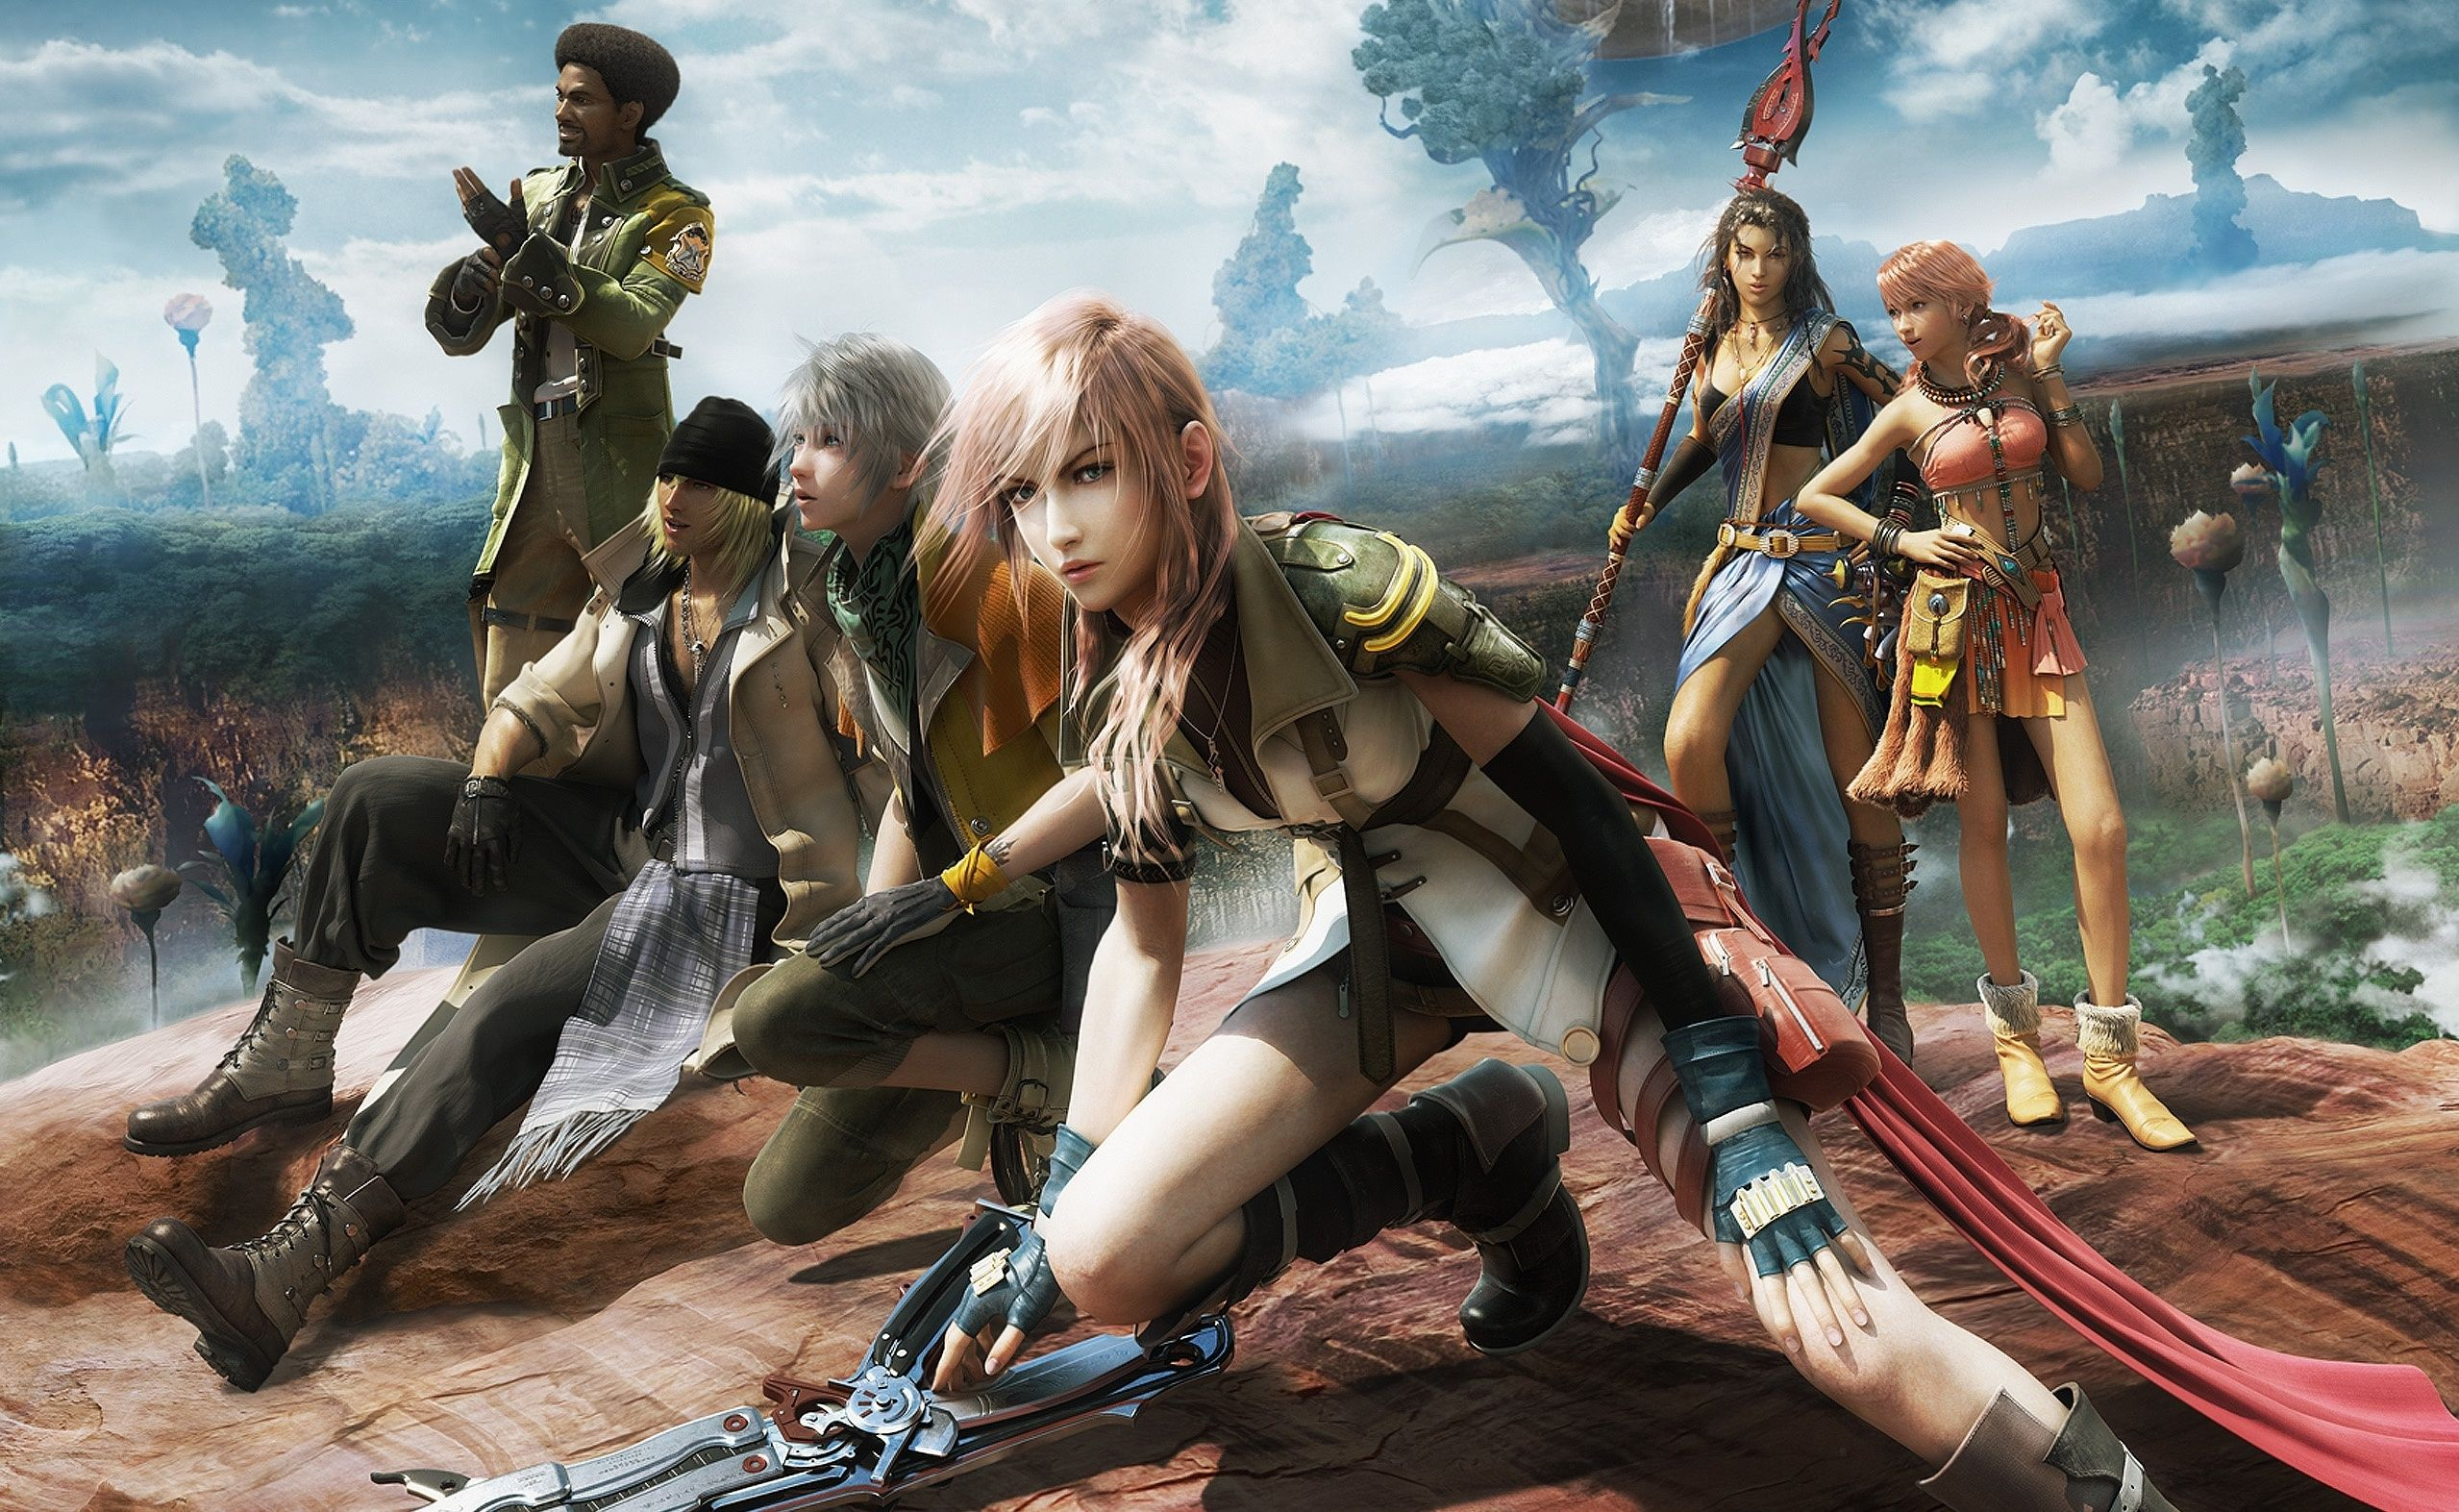 10 Best Final Fantasy 13 Wallpaper Full Hd 1080p For Pc Desktop In 2020 Final Fantasy Final Fantasy Xbox Fantasy Games